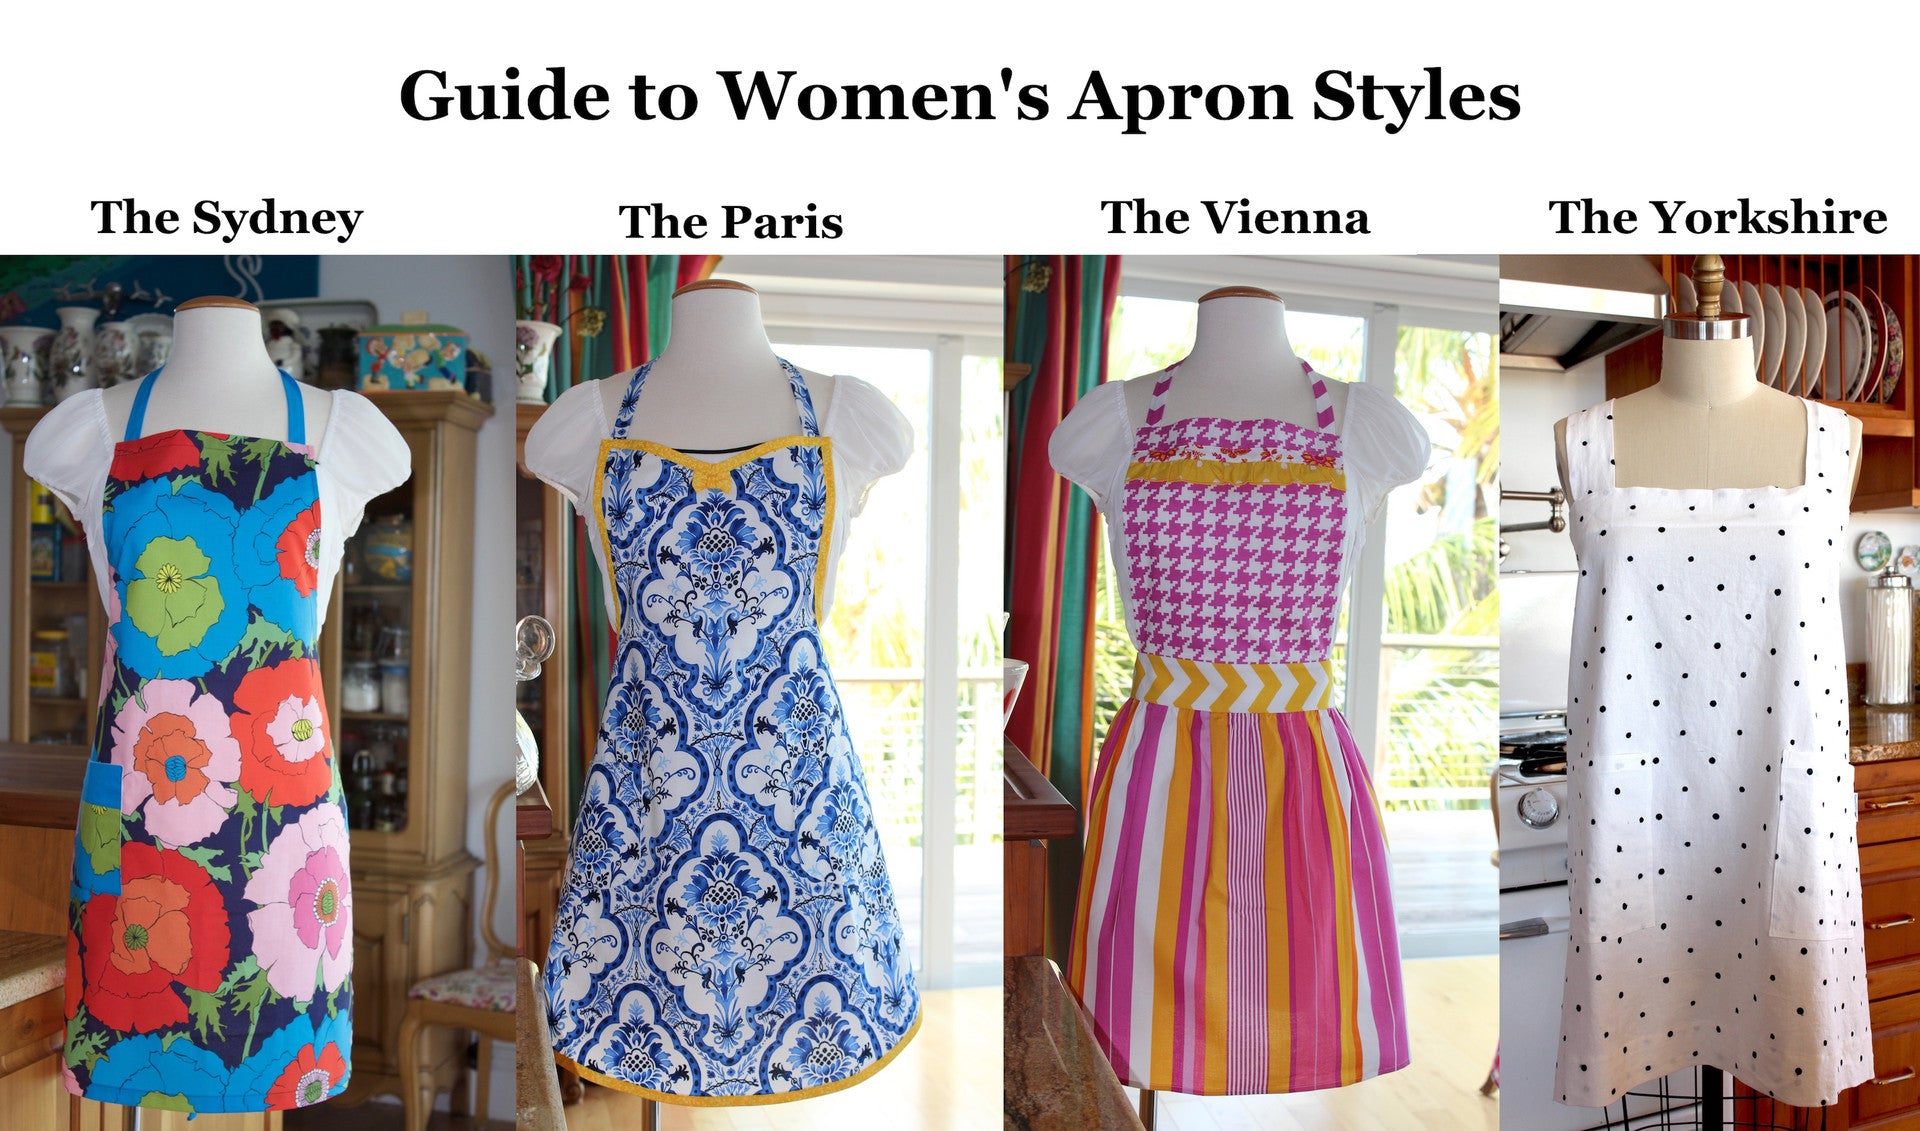 Four different women's apron styles